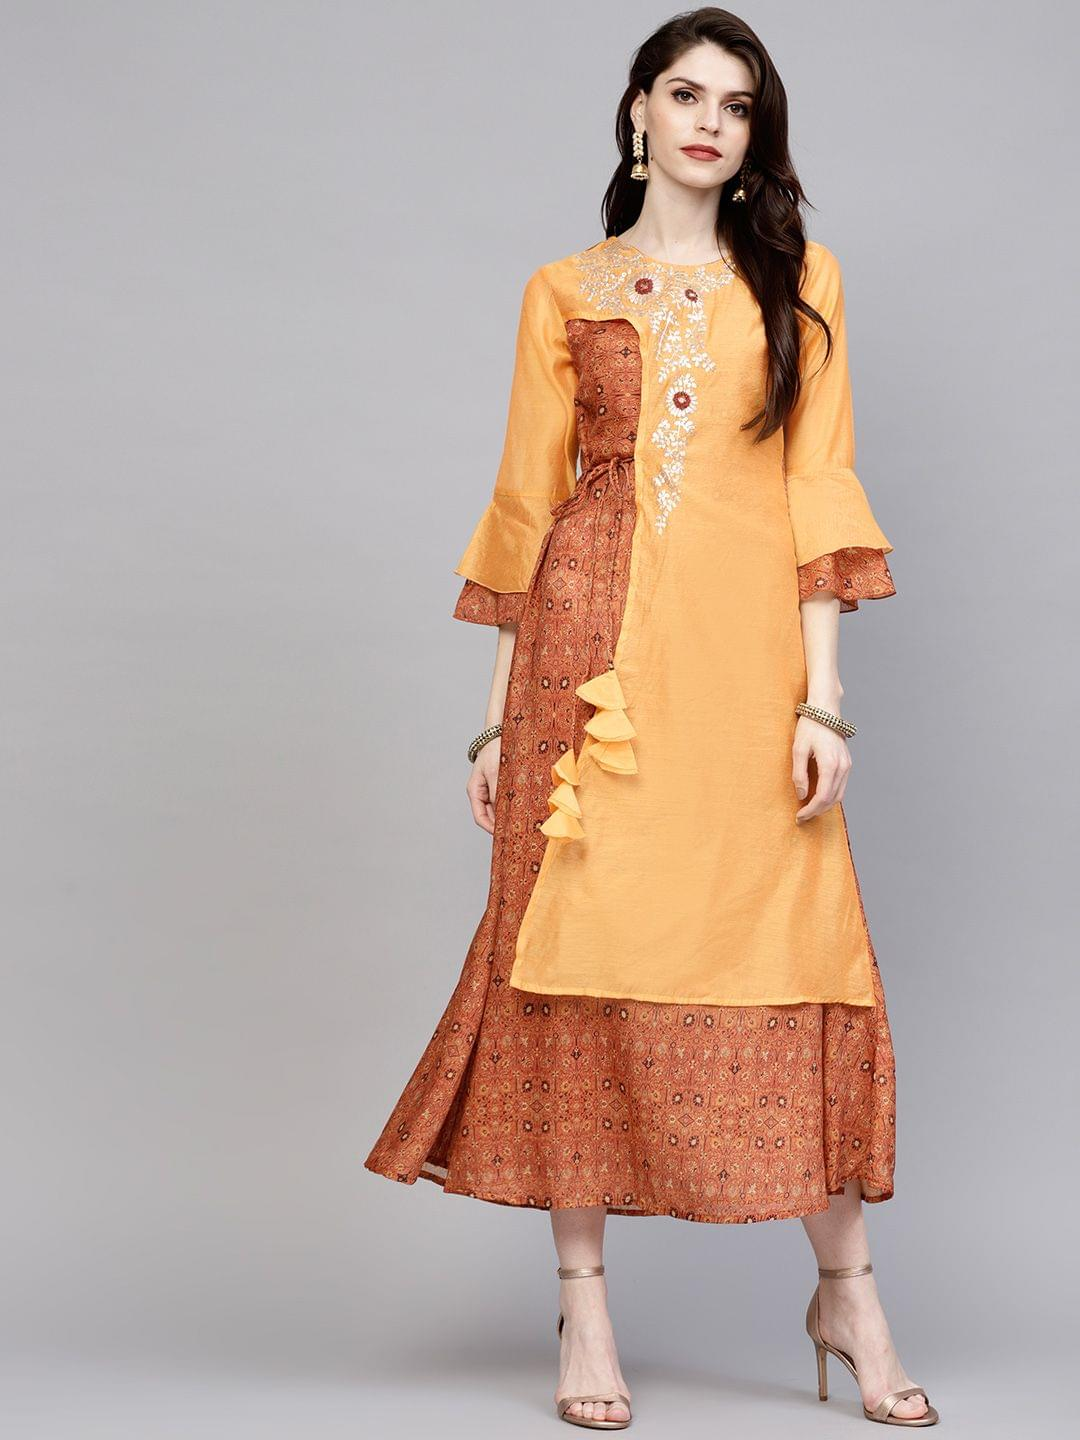 Yufta Women Orange & Brown Printed Layered A-Line Dress